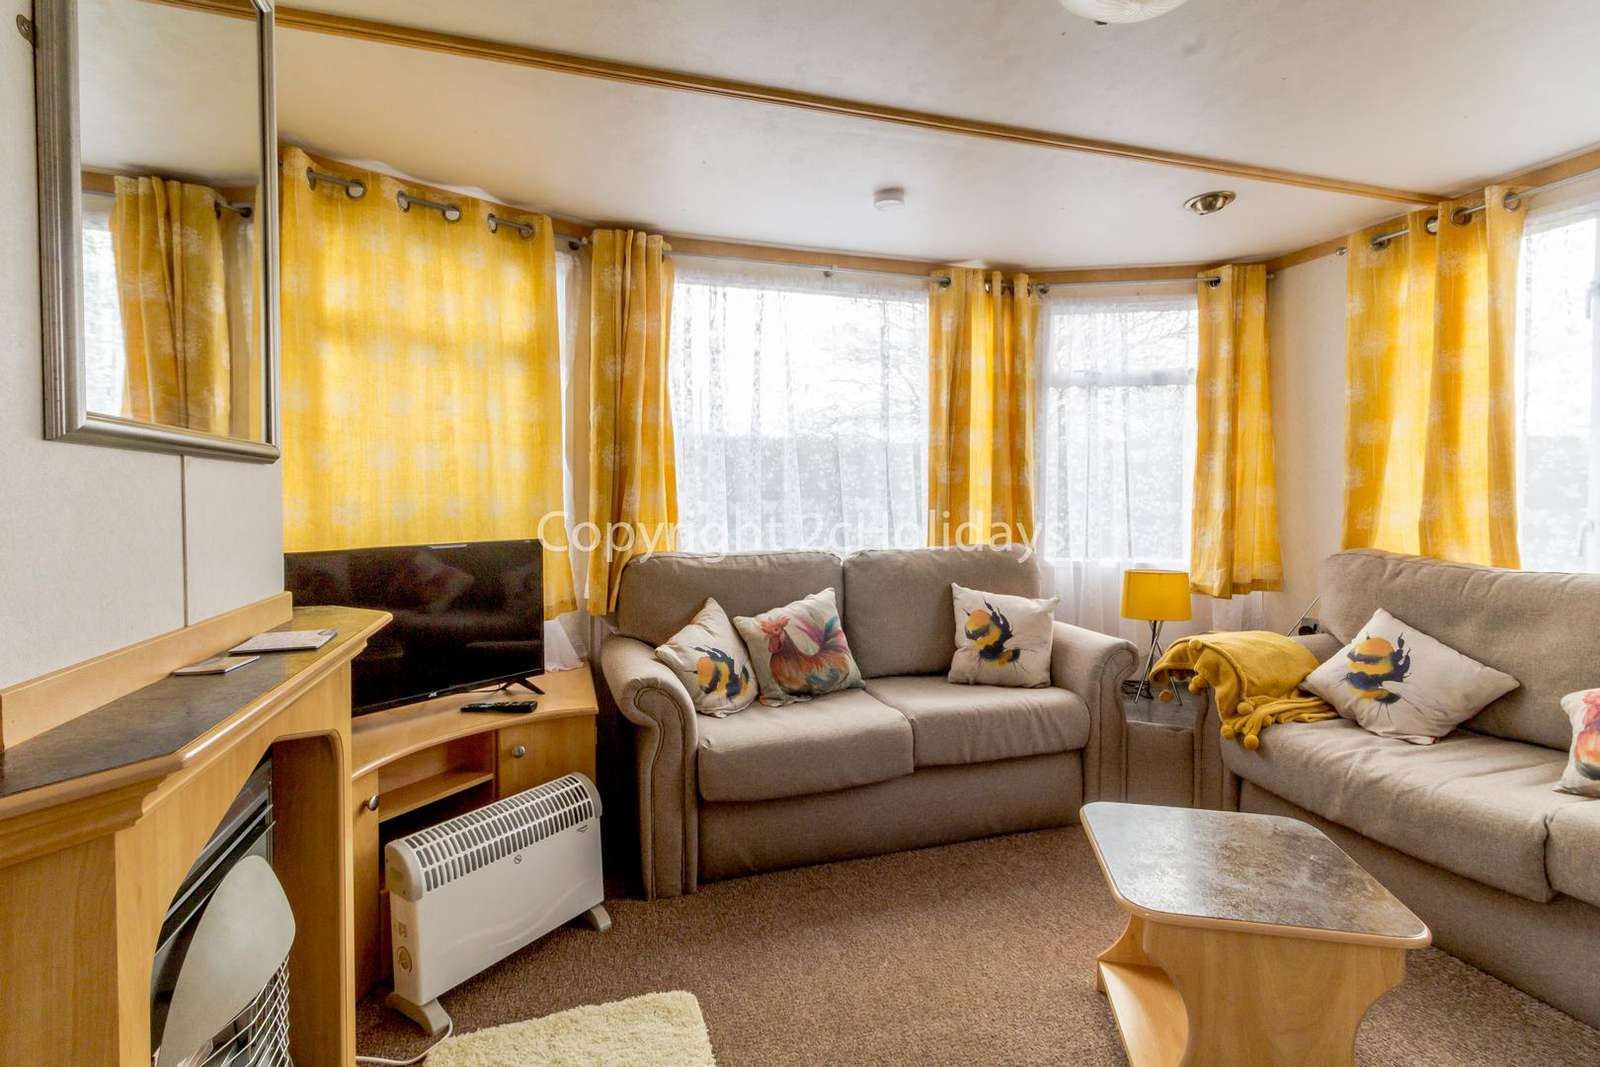 Cosy home with a TV and gas fire!